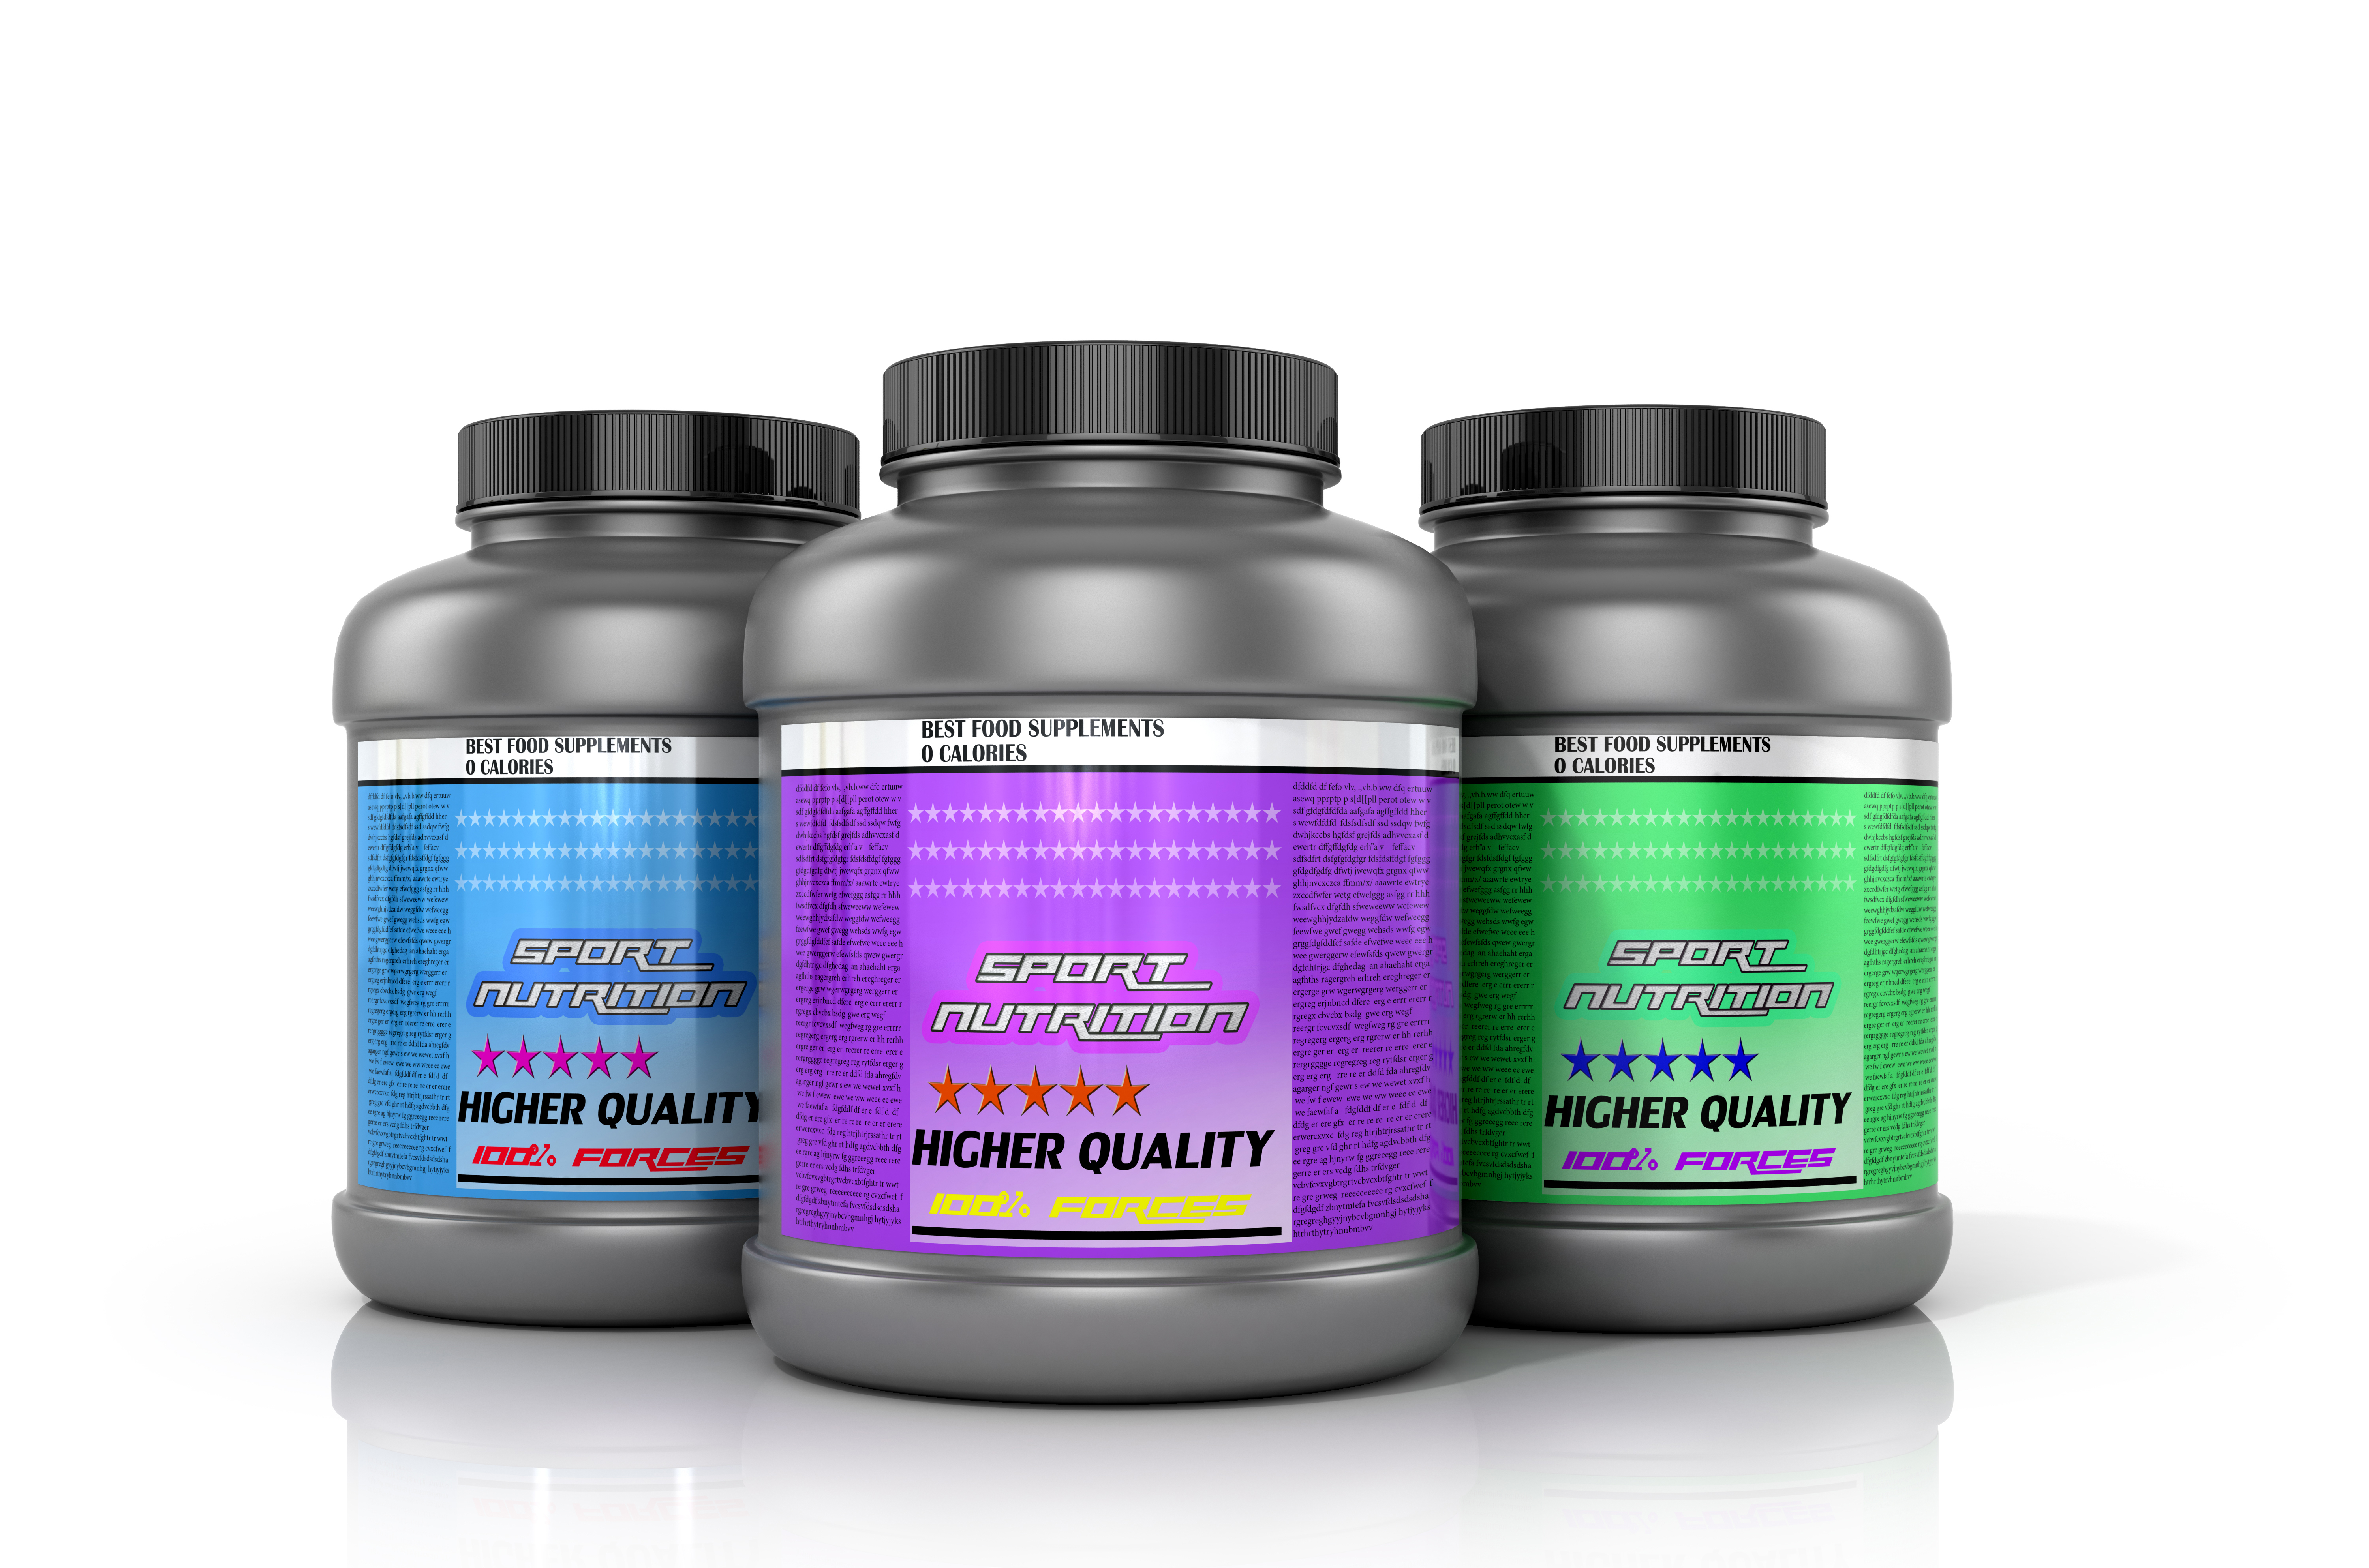 Sports nutrition supplements on a white background